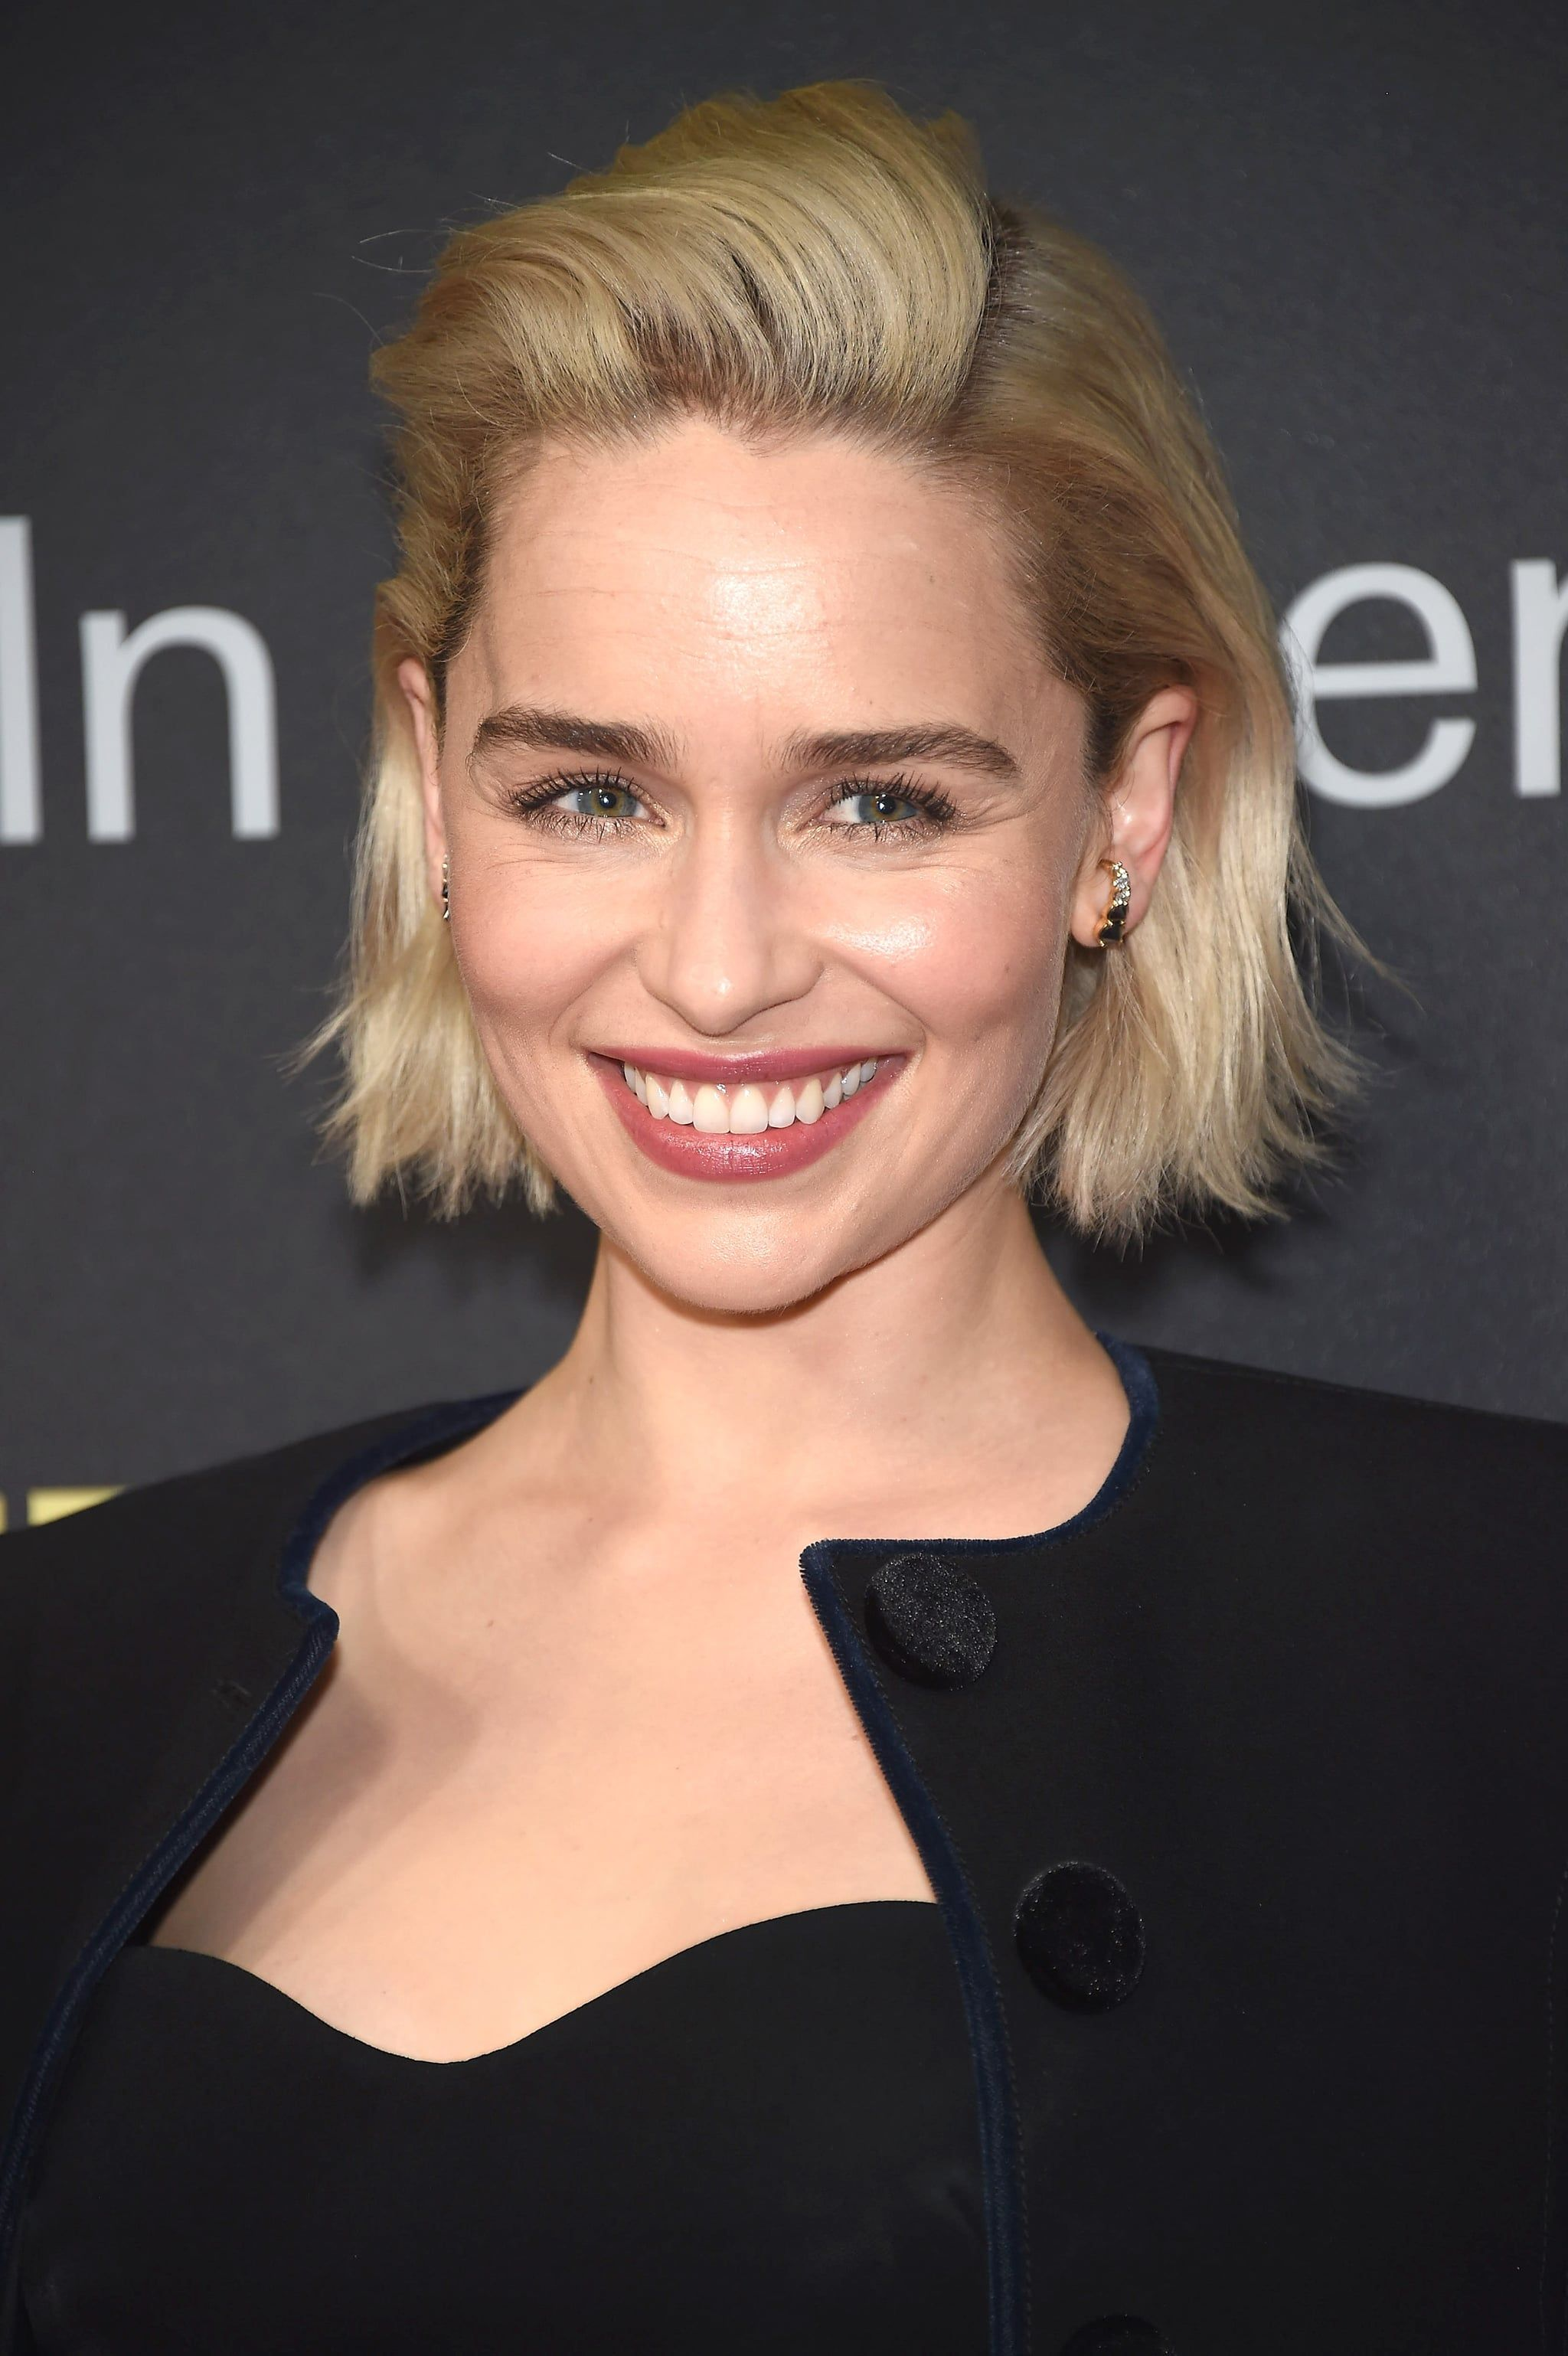 She Gave Her Bob Some Volume While Attending A Gala In New York Hair Styles Short Hair Styles Emilia Clarke Hair